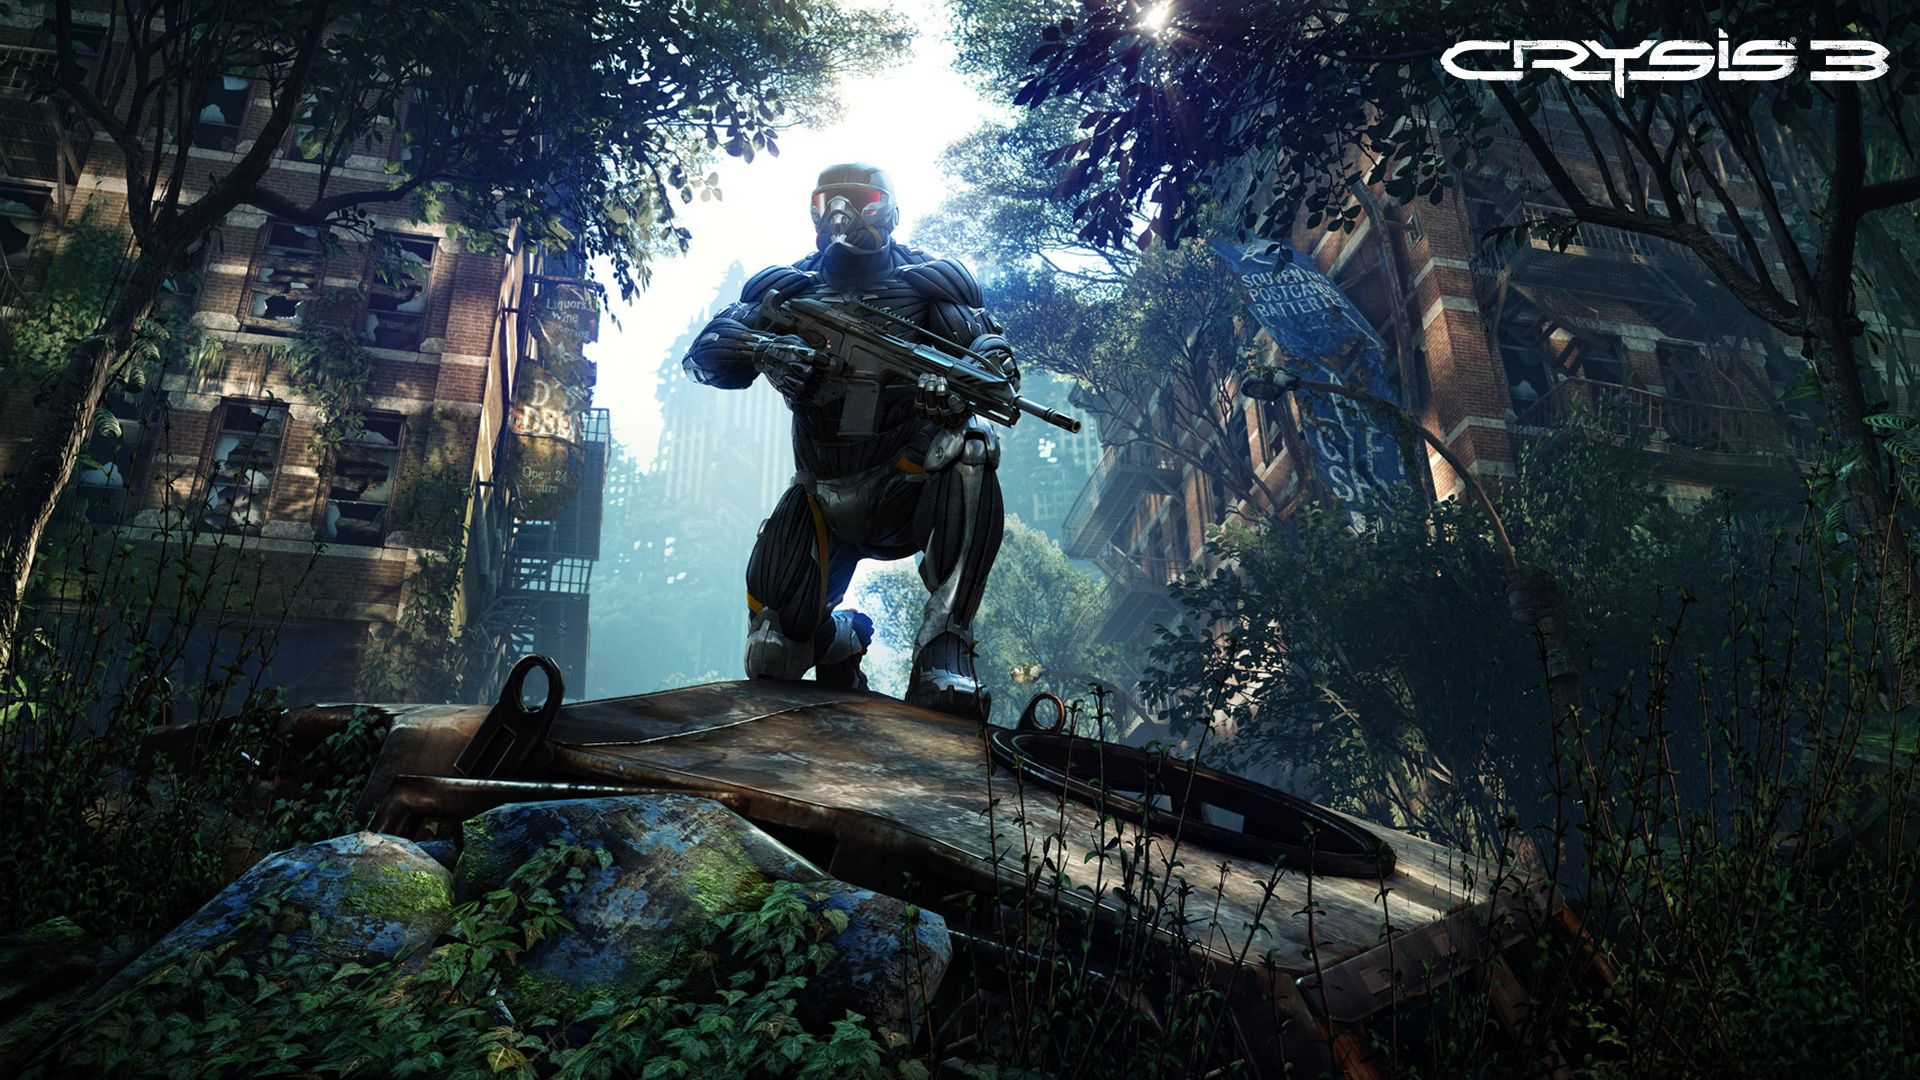 High Def Gaming Backgrounds For Your Computer Desktop Hd Wallpaper Electronic Art Crysis Series